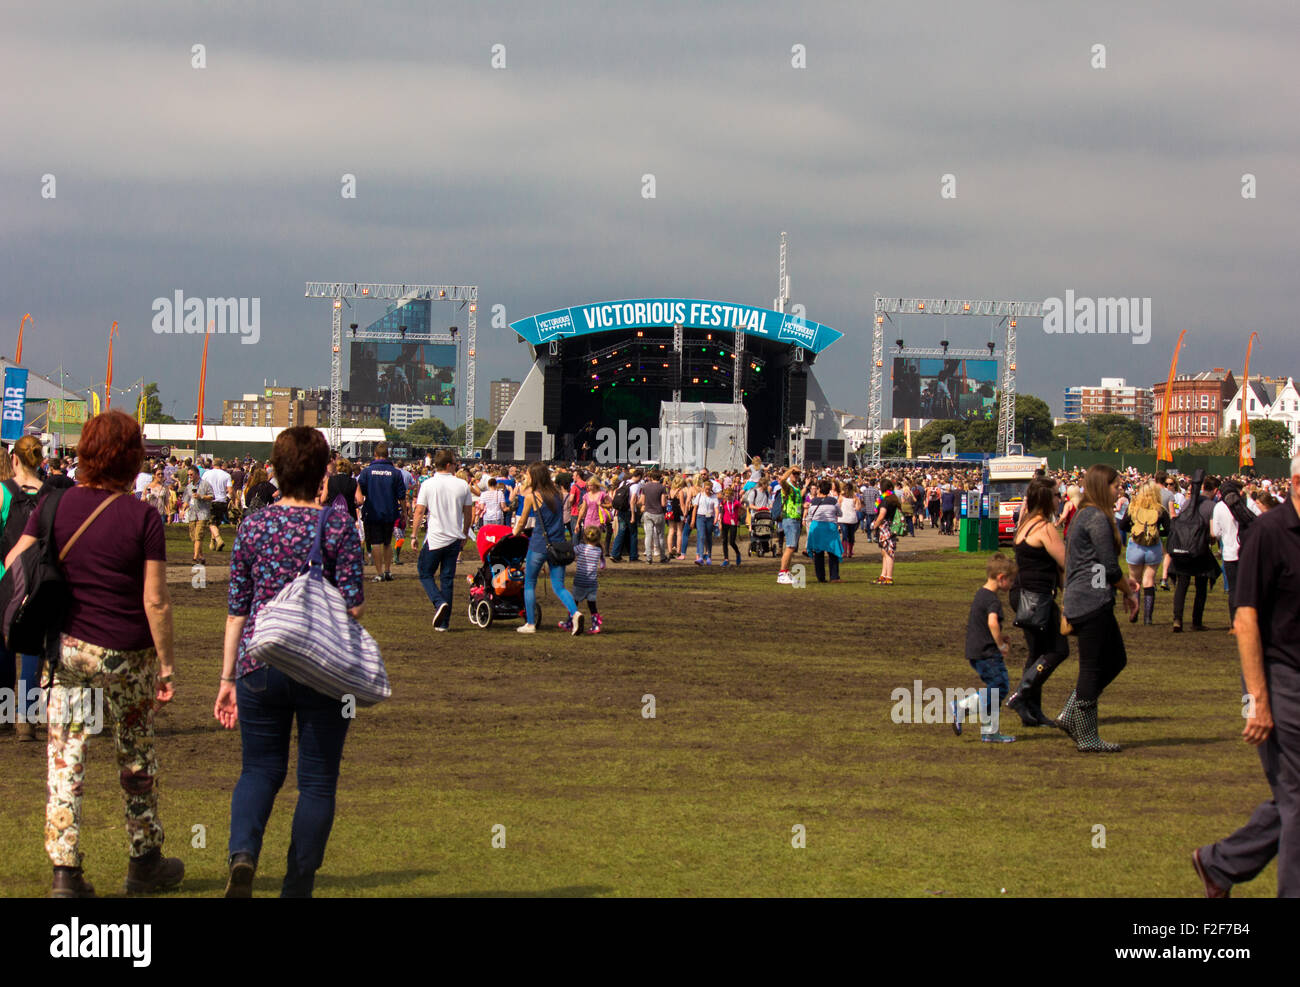 Victorious Festival Common (main) stage showing the crowds, cloudy weather and the atmosphere of the day. Stock Photo